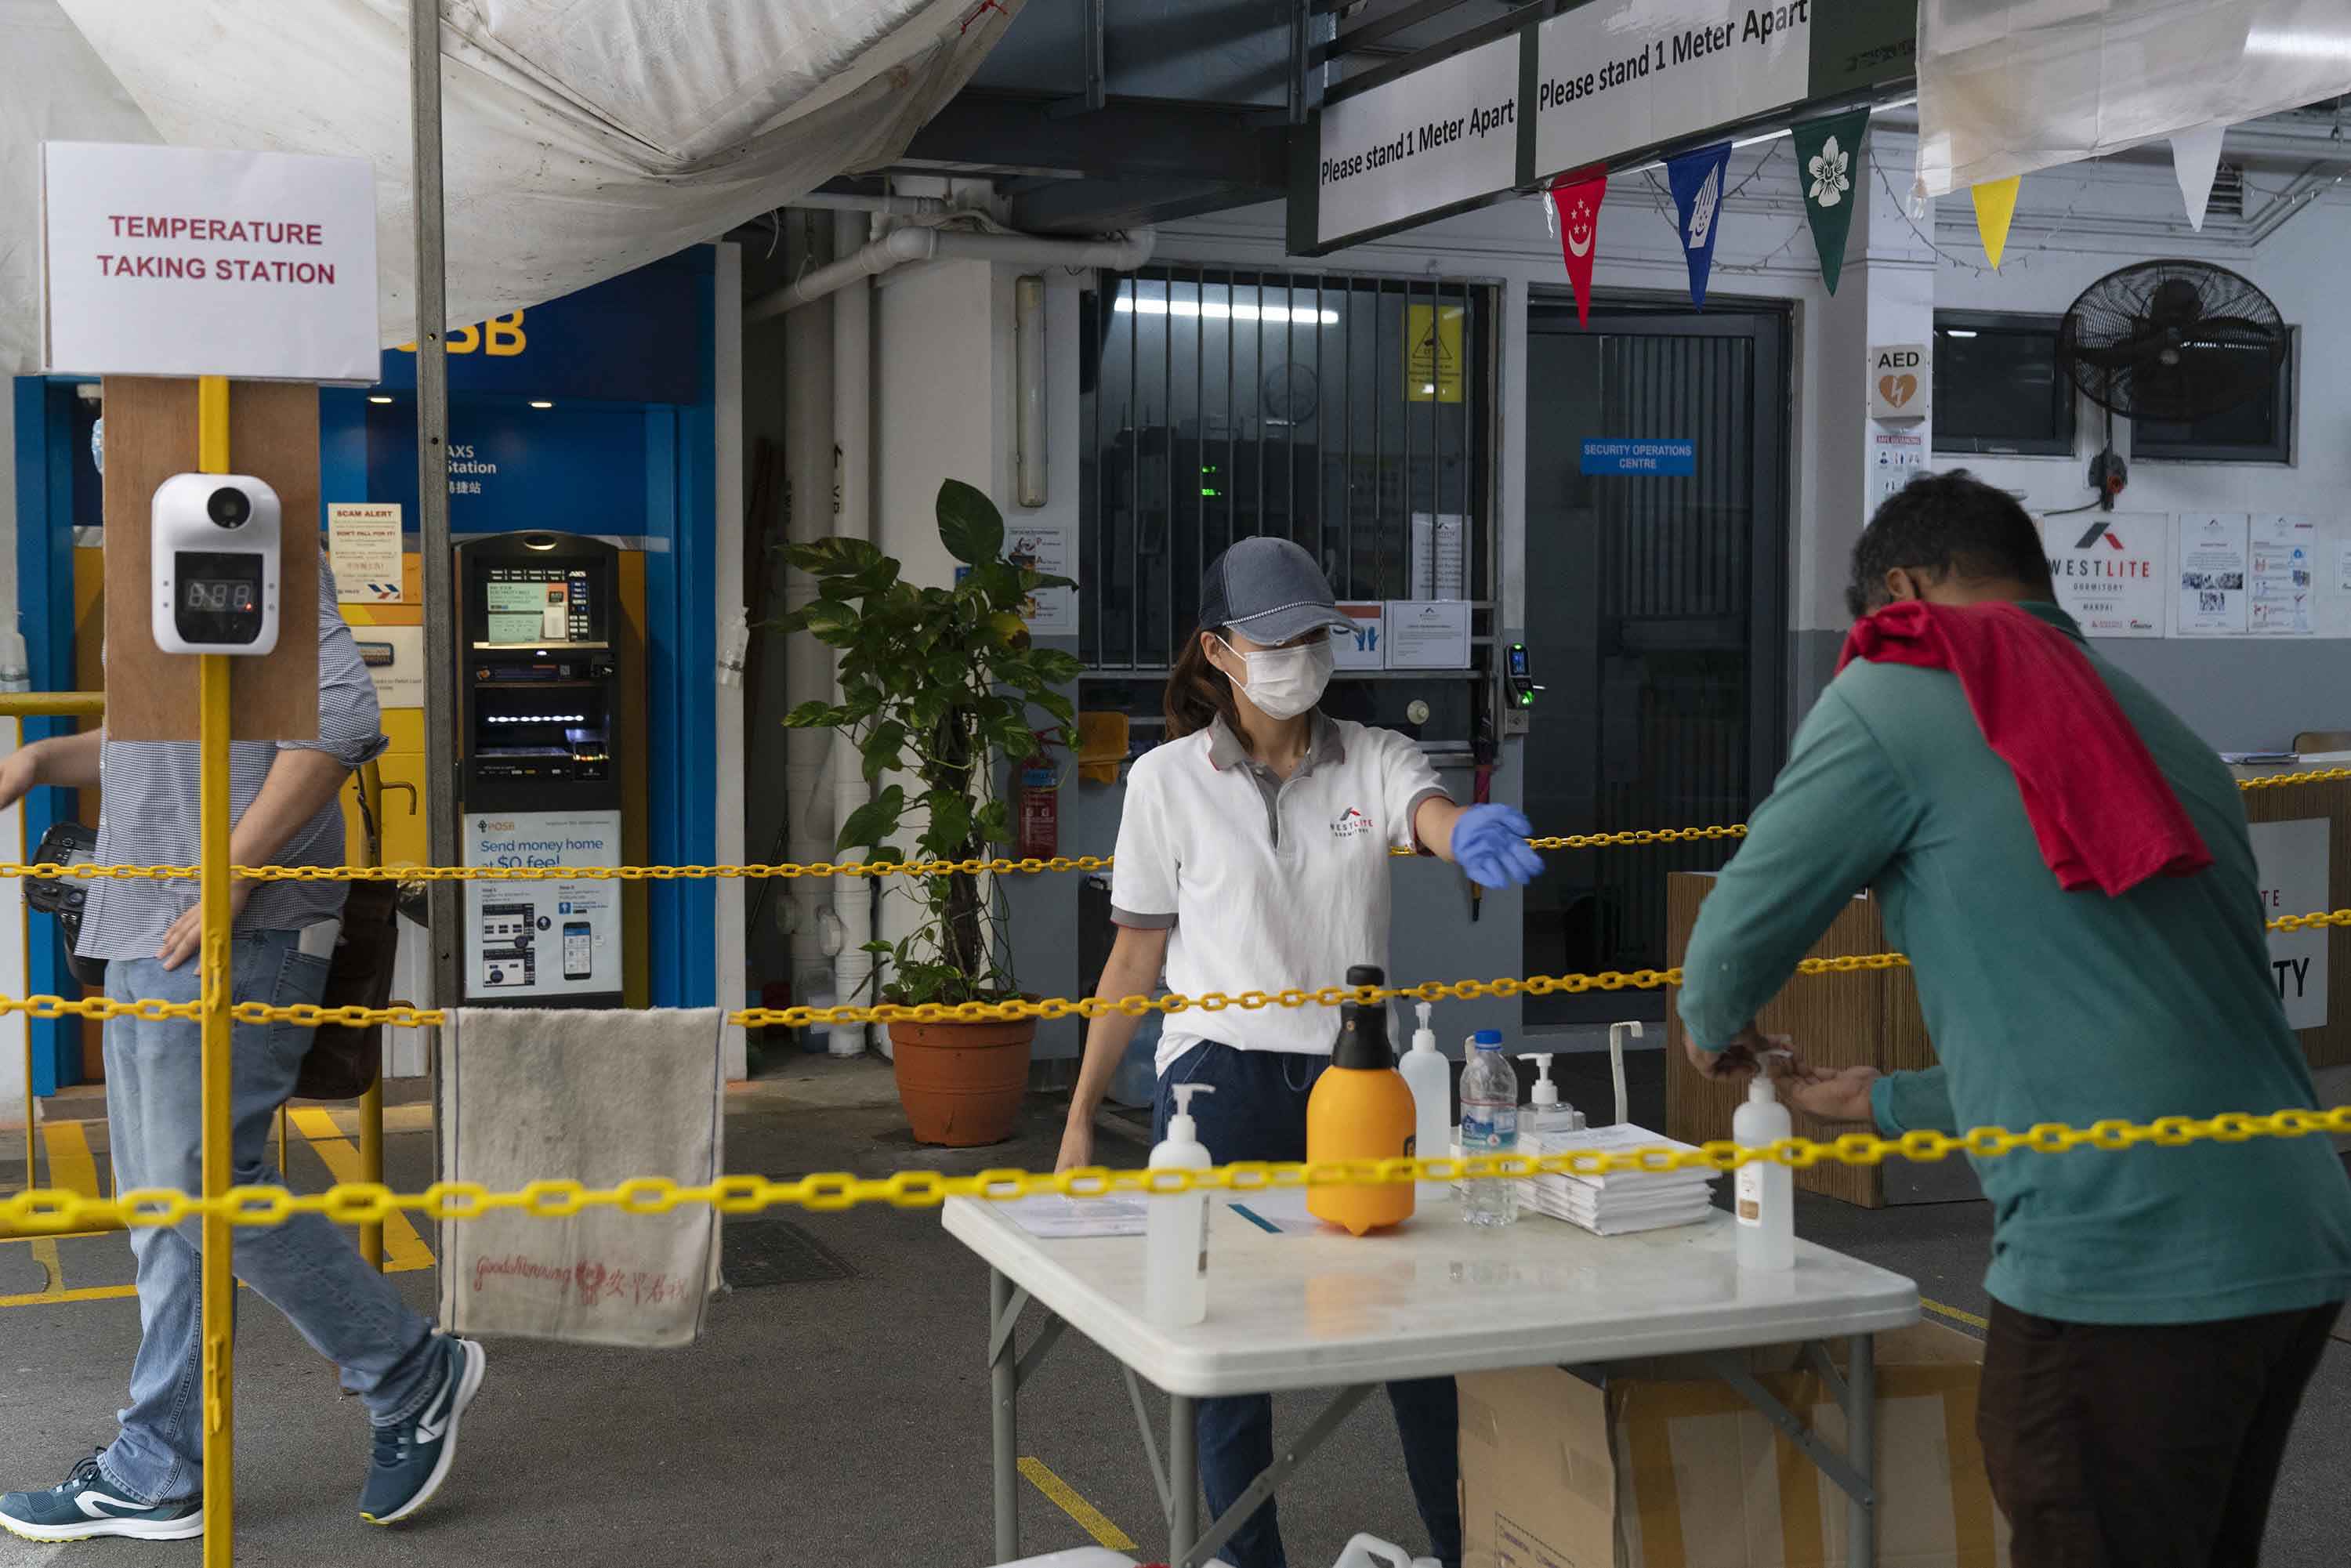 A worker uses hand sanitizer at the entrance to the Westlite Mandai worker dormitory in Singapore, in August.